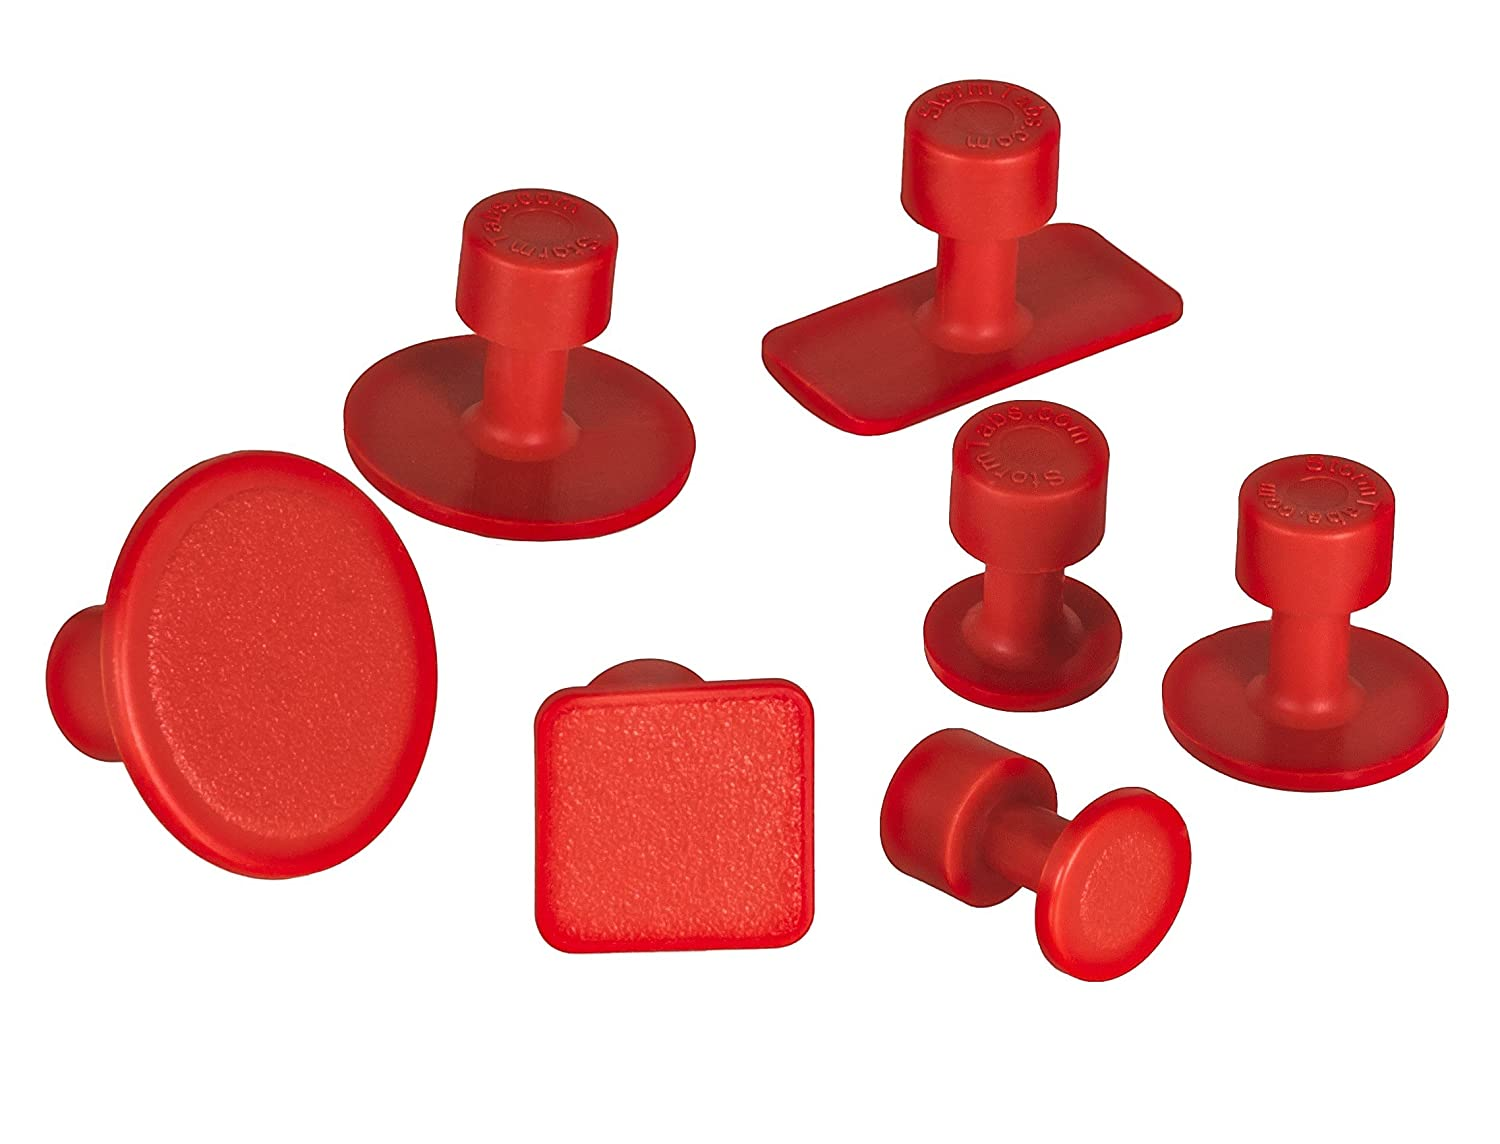 Red TUBOFLEX PDR Suction Cups levabolli-rimozione ammaccature-pdr Paintless dent-storm tabs-confezione 7/ PEZZI